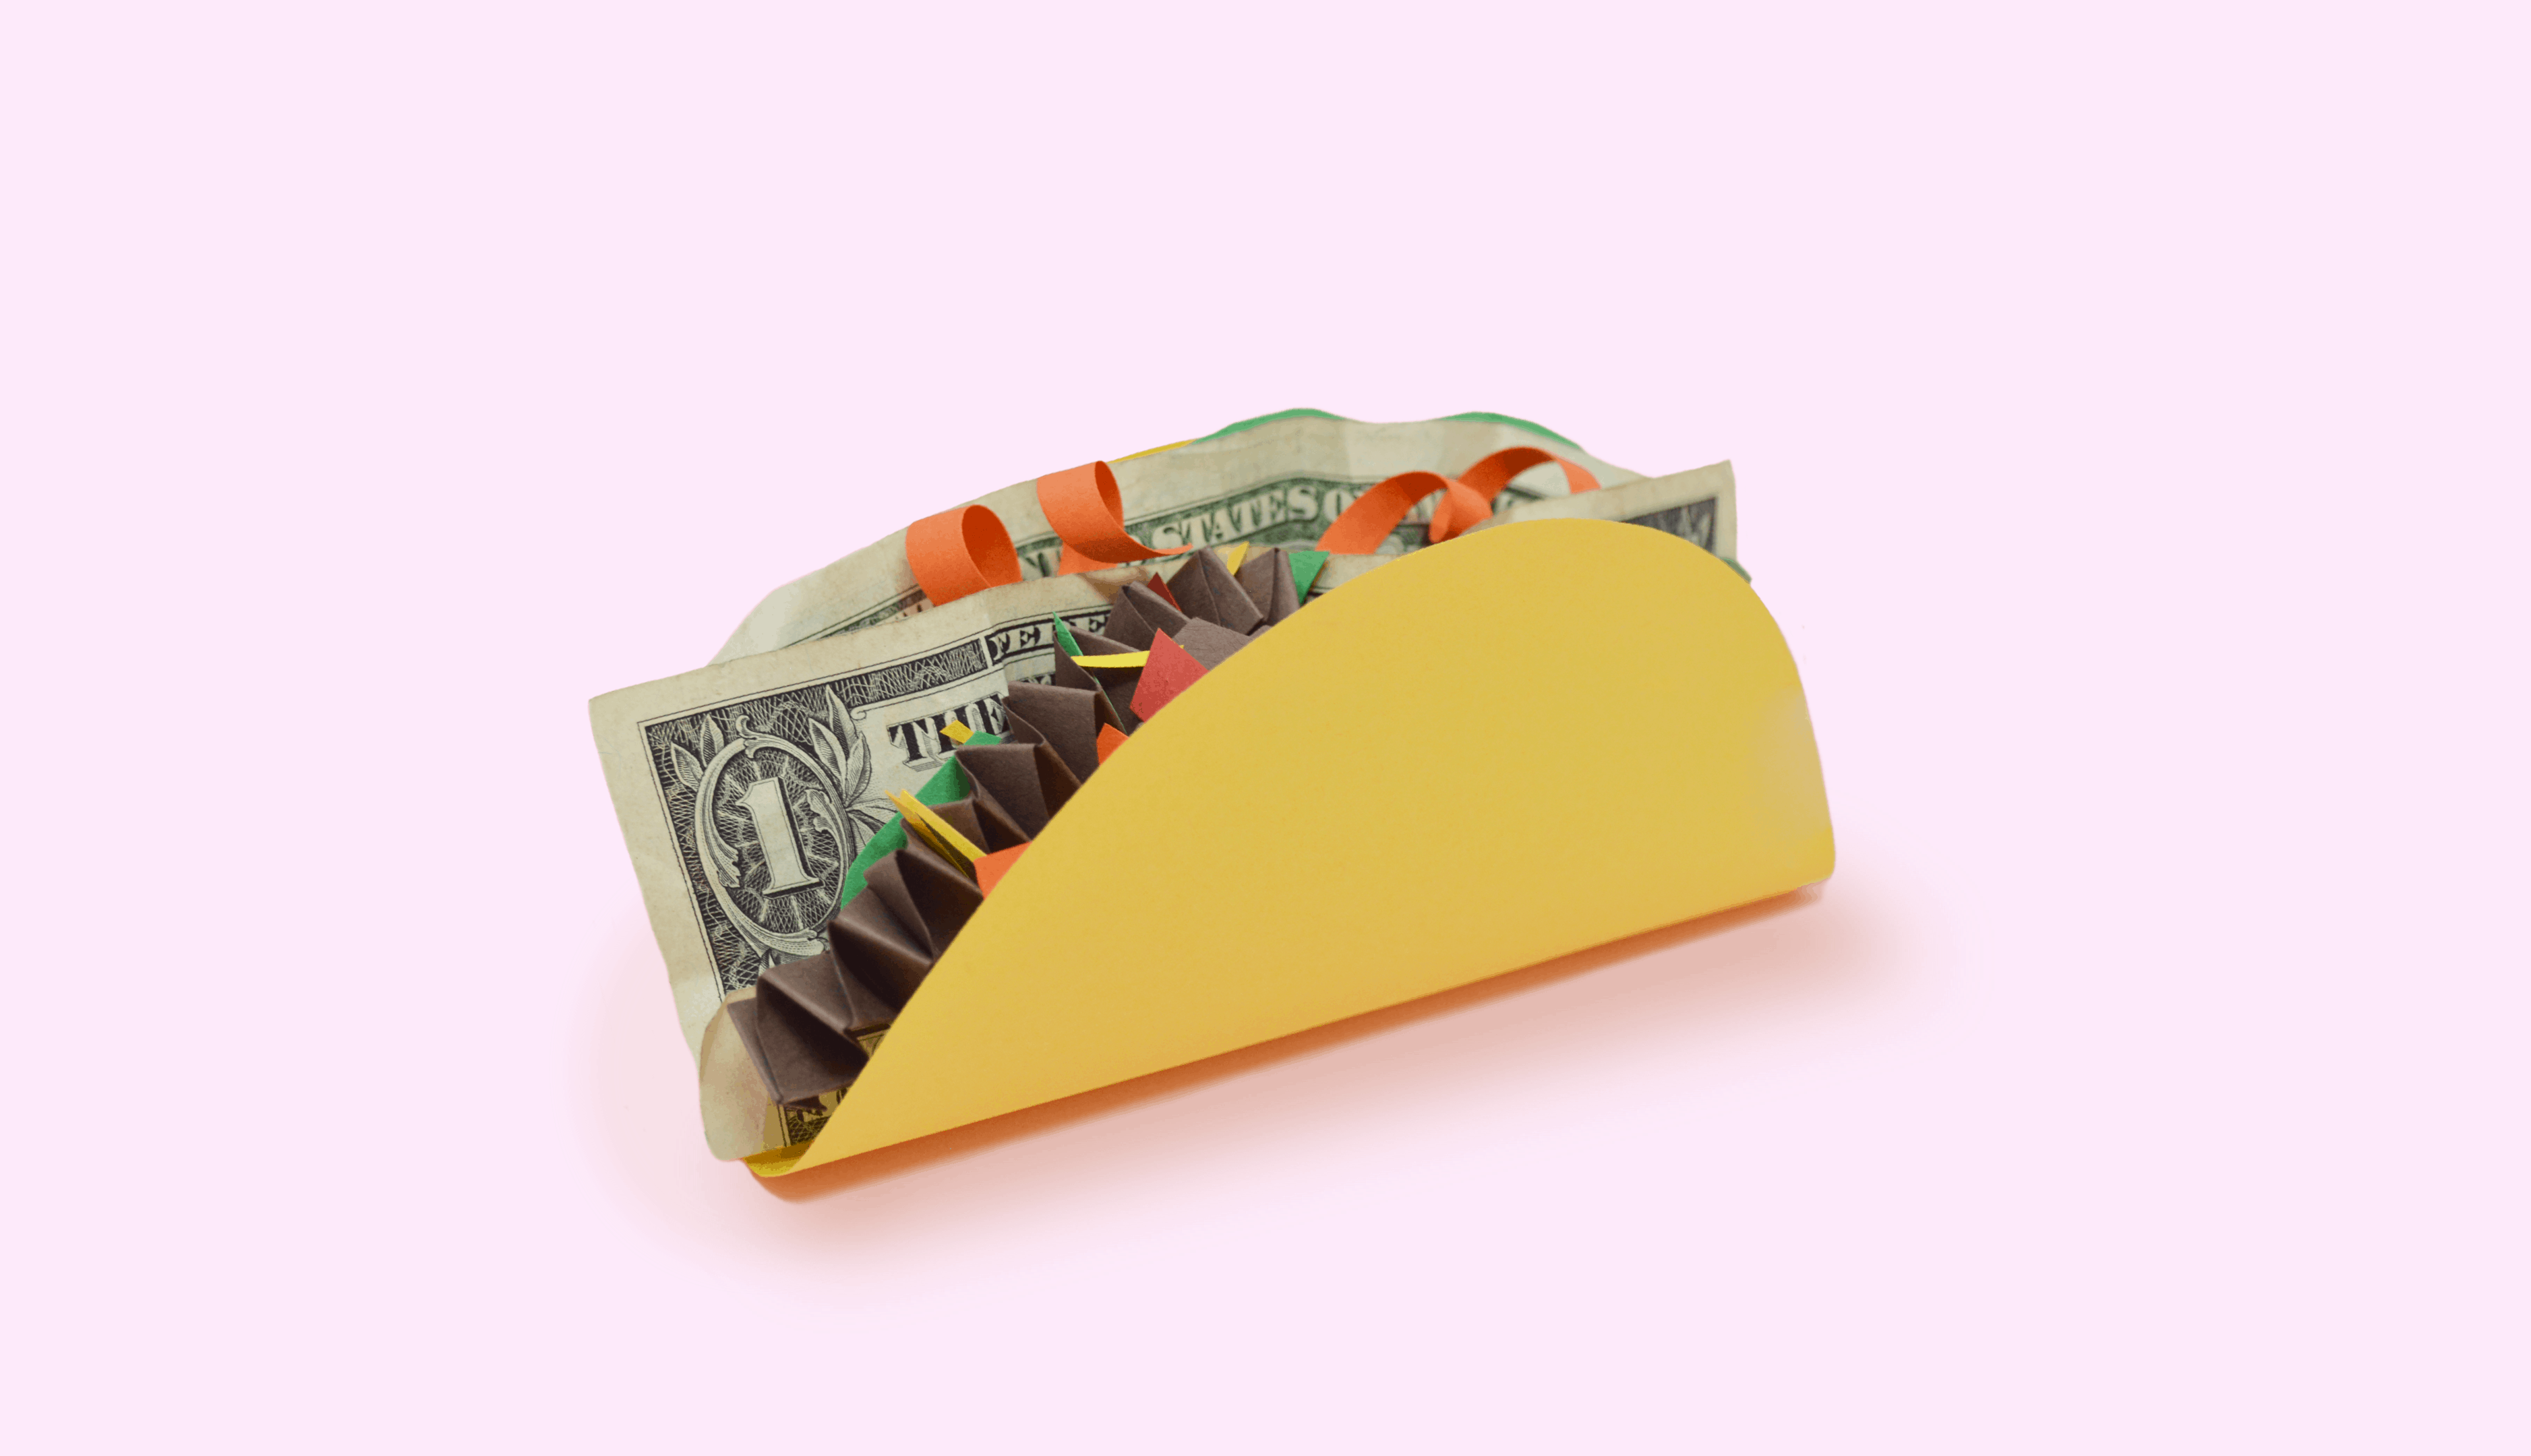 Title: Let's taco-bout investing your health savings account Graphic: A taco filled to the brim with, you guessed it ... money!